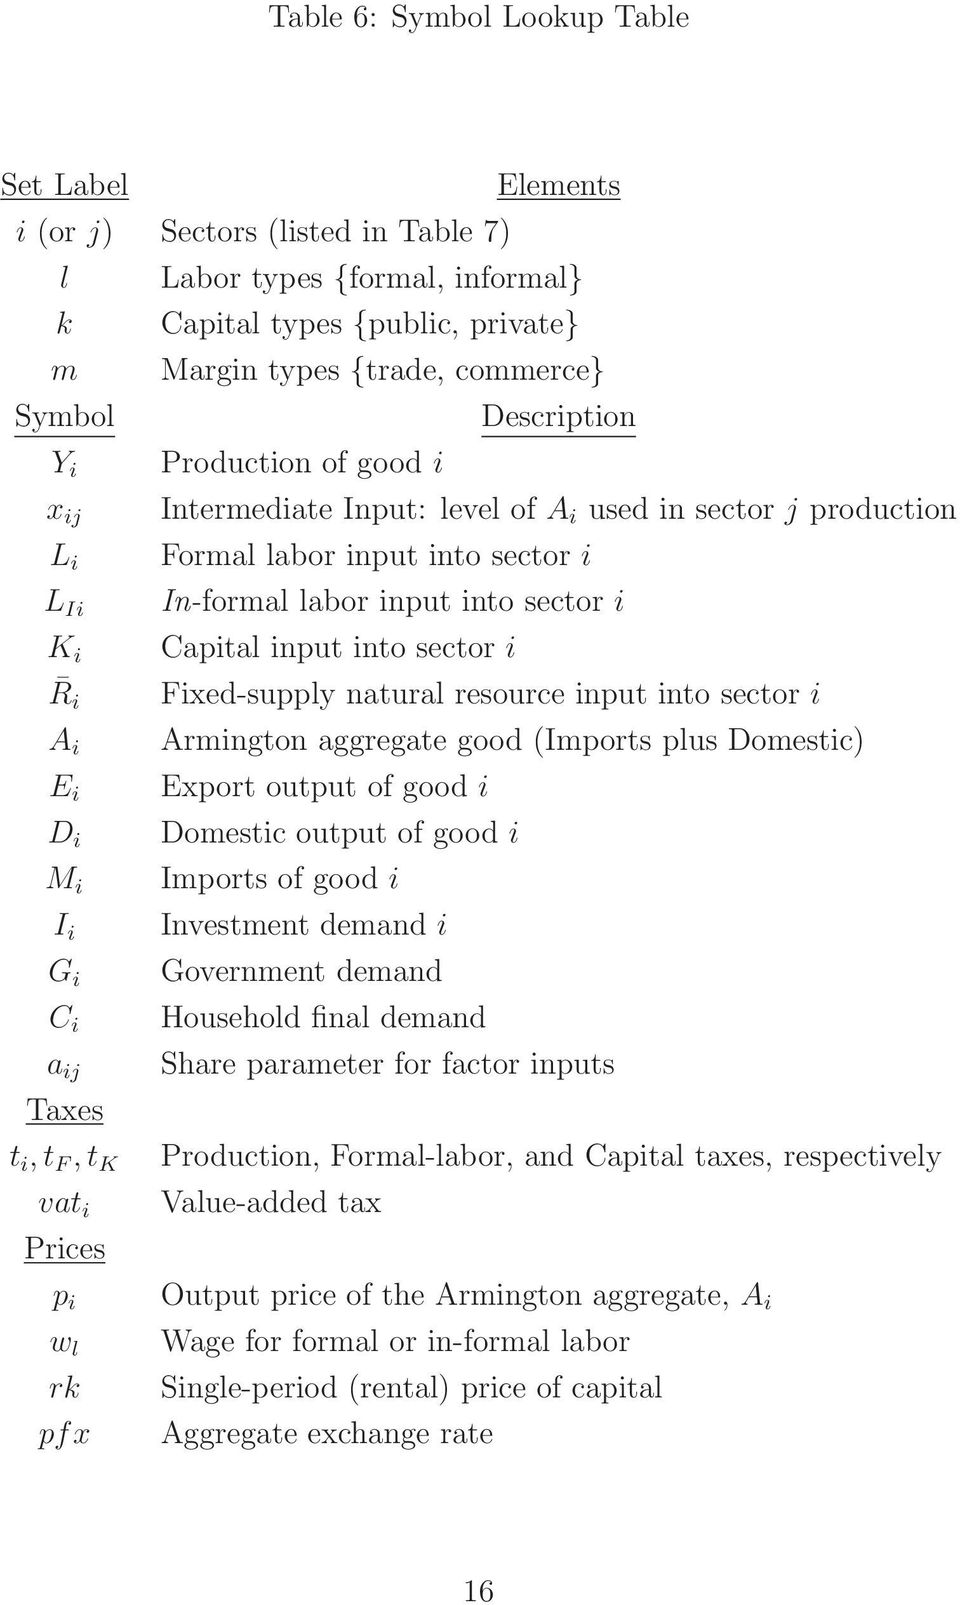 input into sector i In-formal labor input into sector i Capital input into sector i Fixed-supply natural resource input into sector i Armington aggregate good (Imports plus Domestic) Export output of